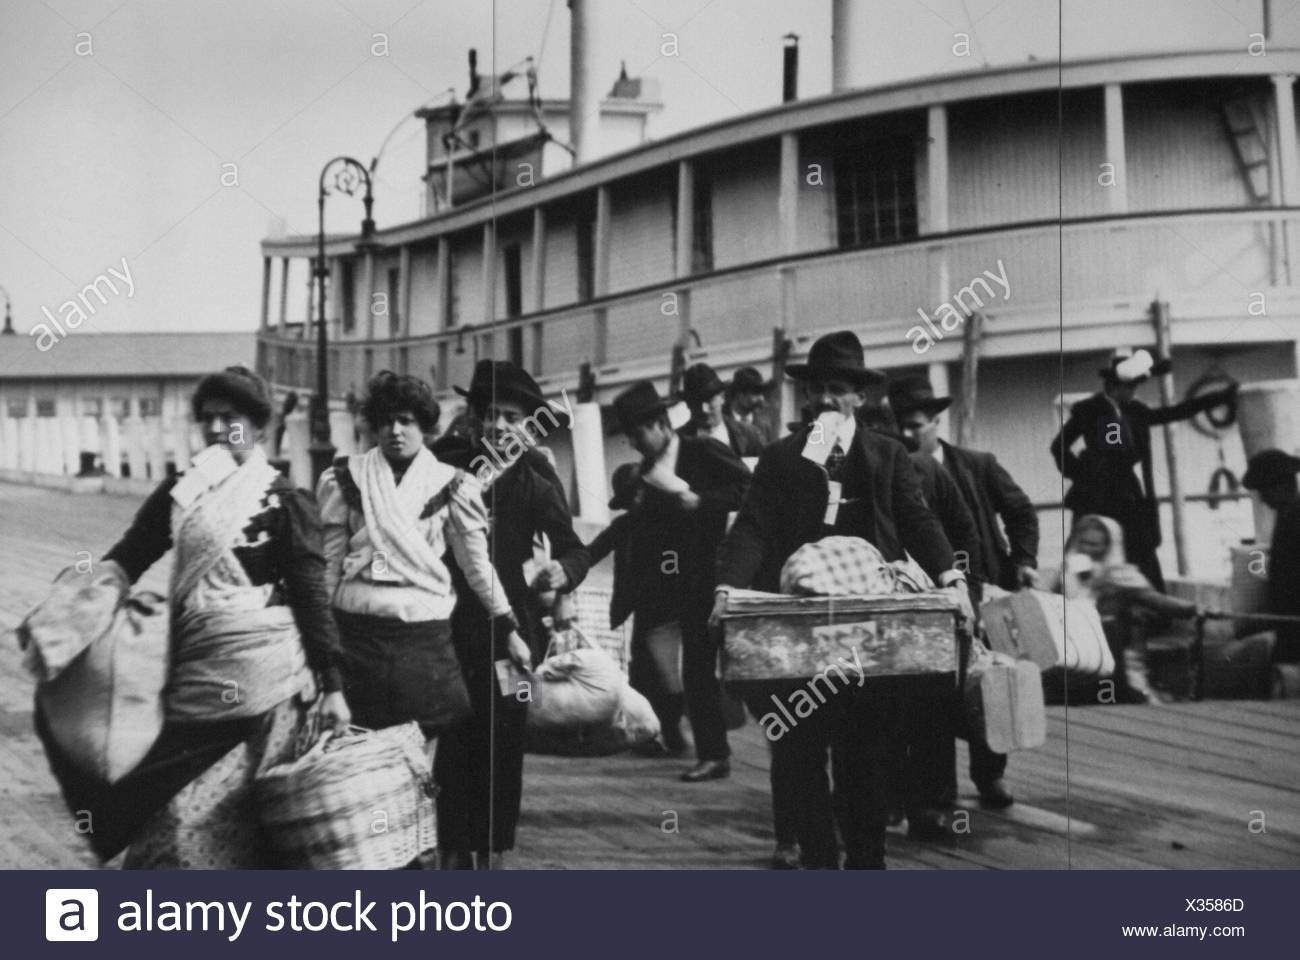 History, USA, New York. Immigrants arriving from Europe at the Ellis Island, around 1900 - Stock Image